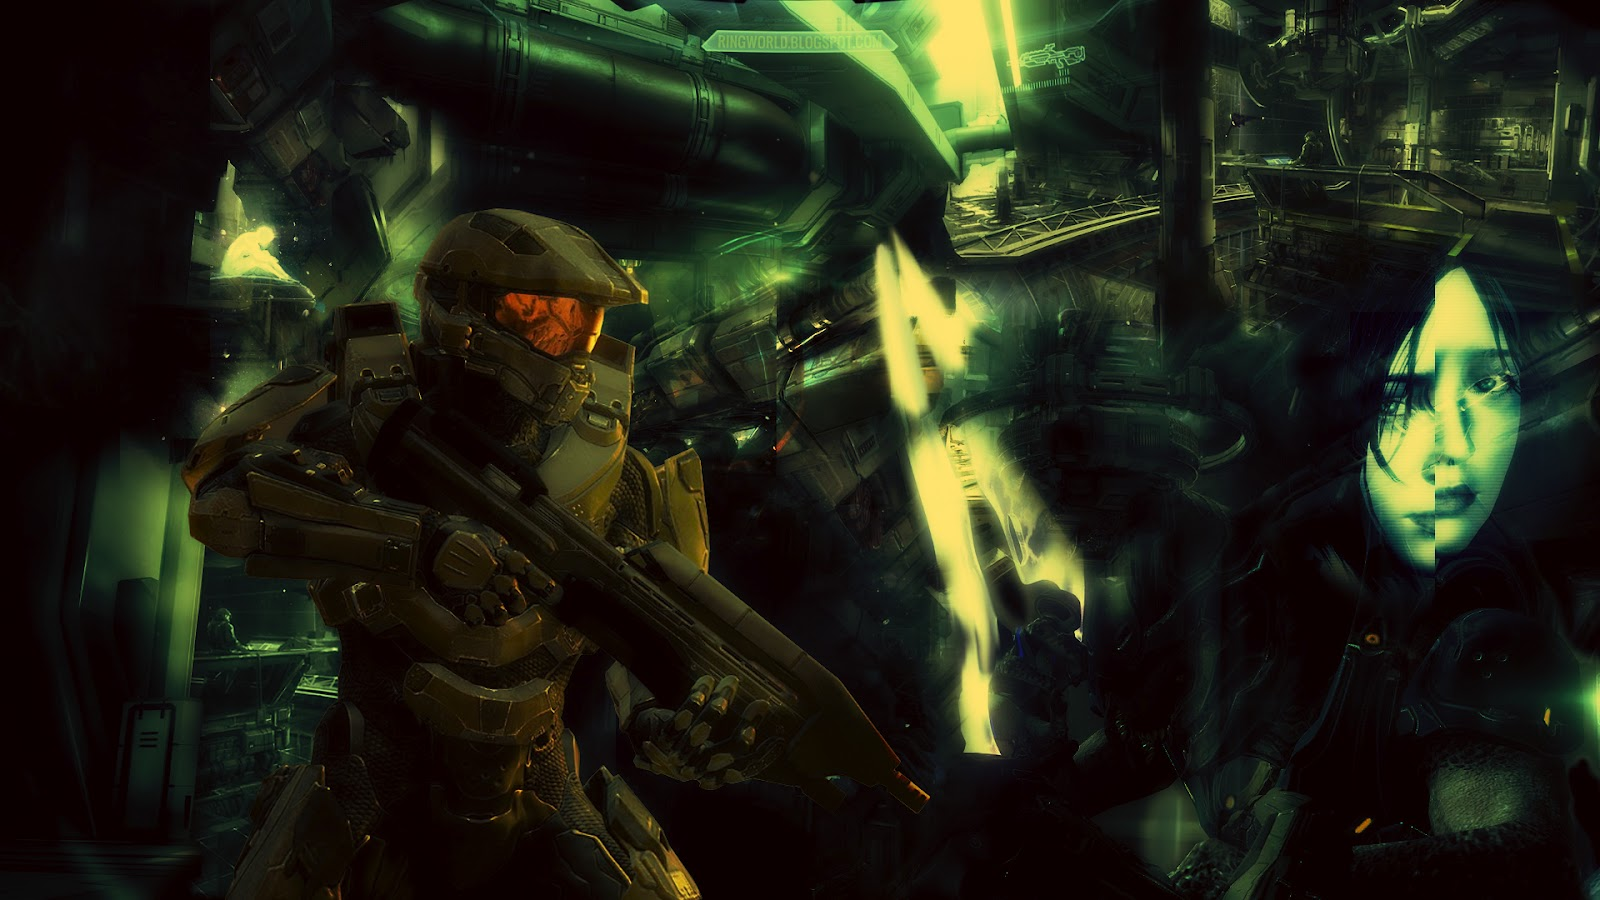 Ring World Halo 4 Master Chief Wallpapers